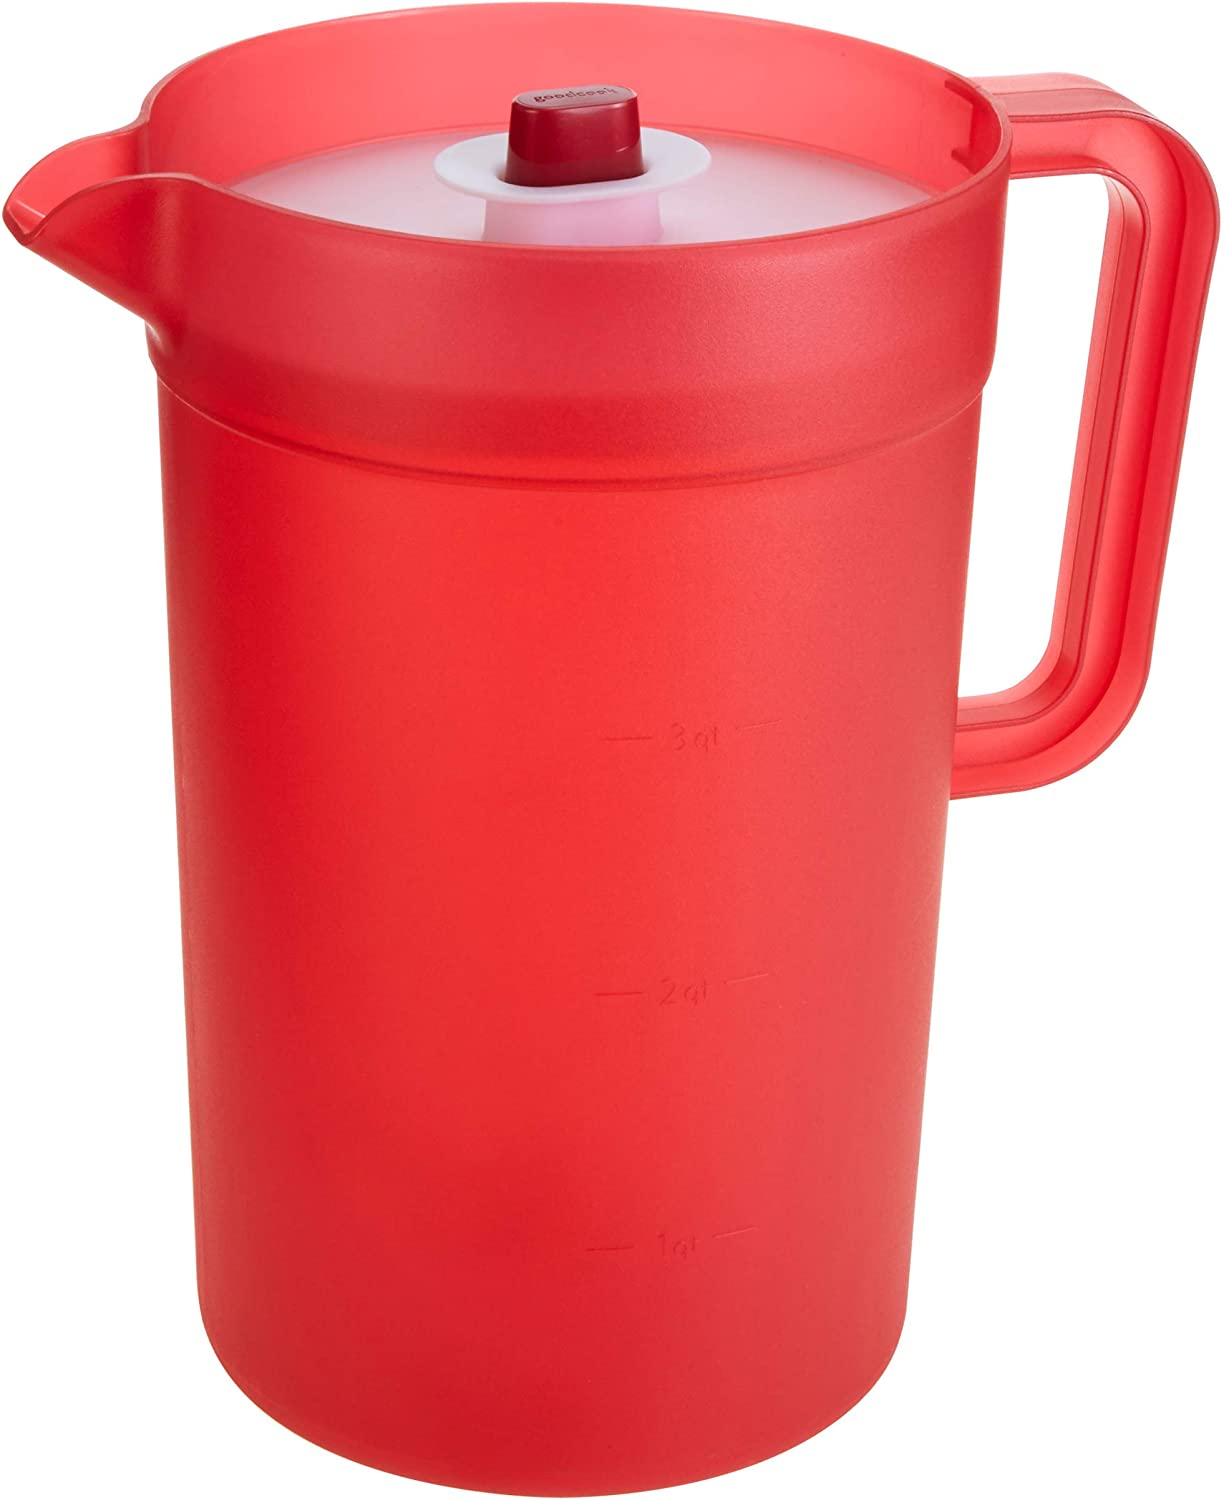 GoodCook 1 Gallon Plastic Pitcher with Vacuum Suction Seal Lid, juice, water, mixed drinks, Clear and Red